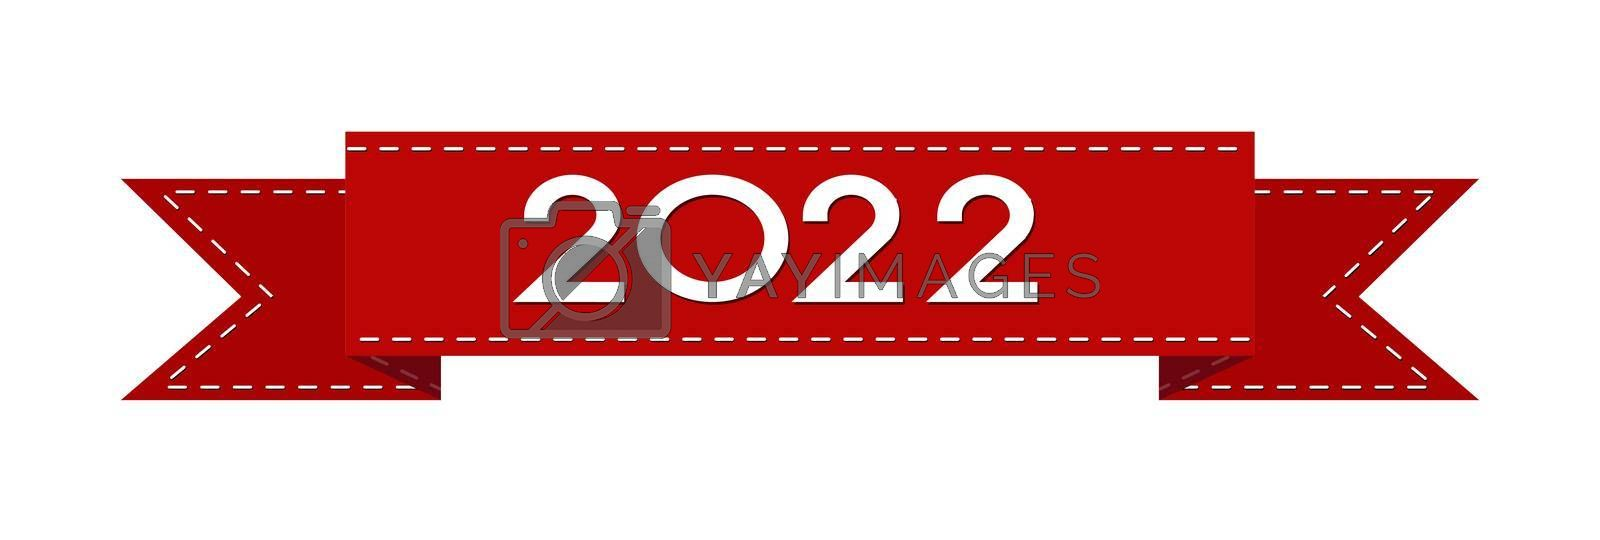 A red ribbon with the number 2022. The new year is 2022. Merry Christmas and Happy New Year. Vector illustration.